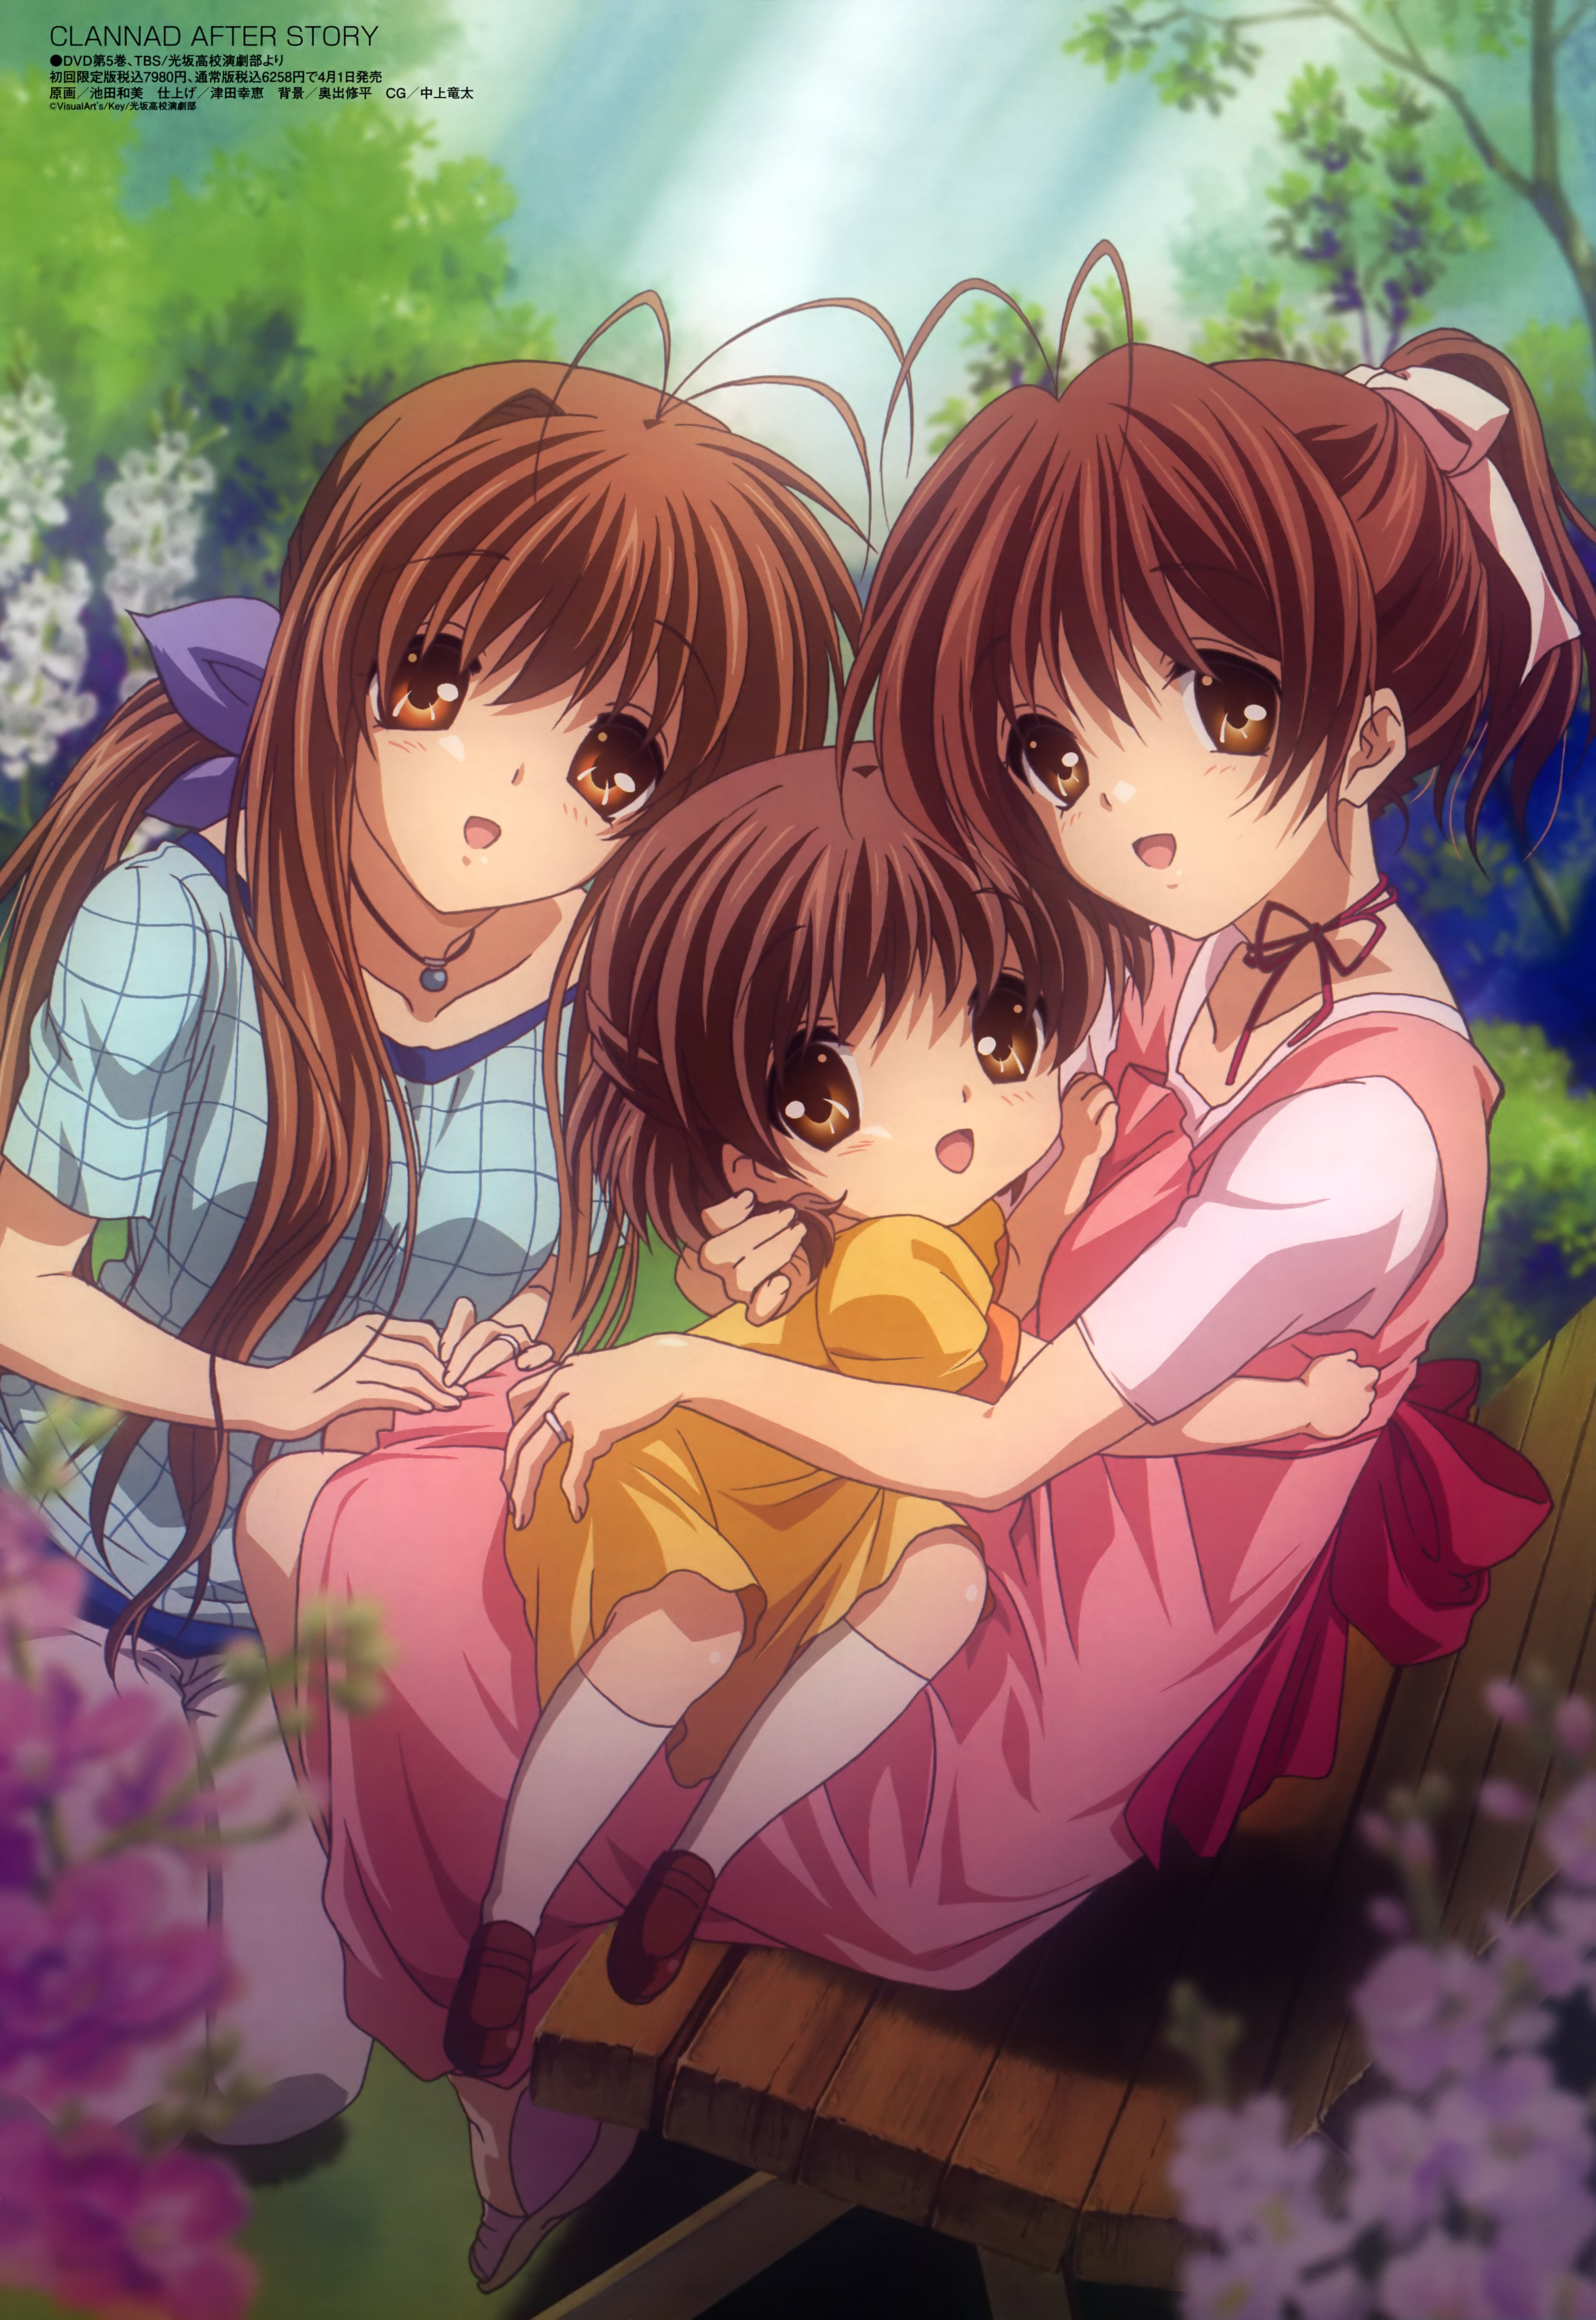 Clannad After Story Mobile Wallpaper Zerochan Anime Image Board